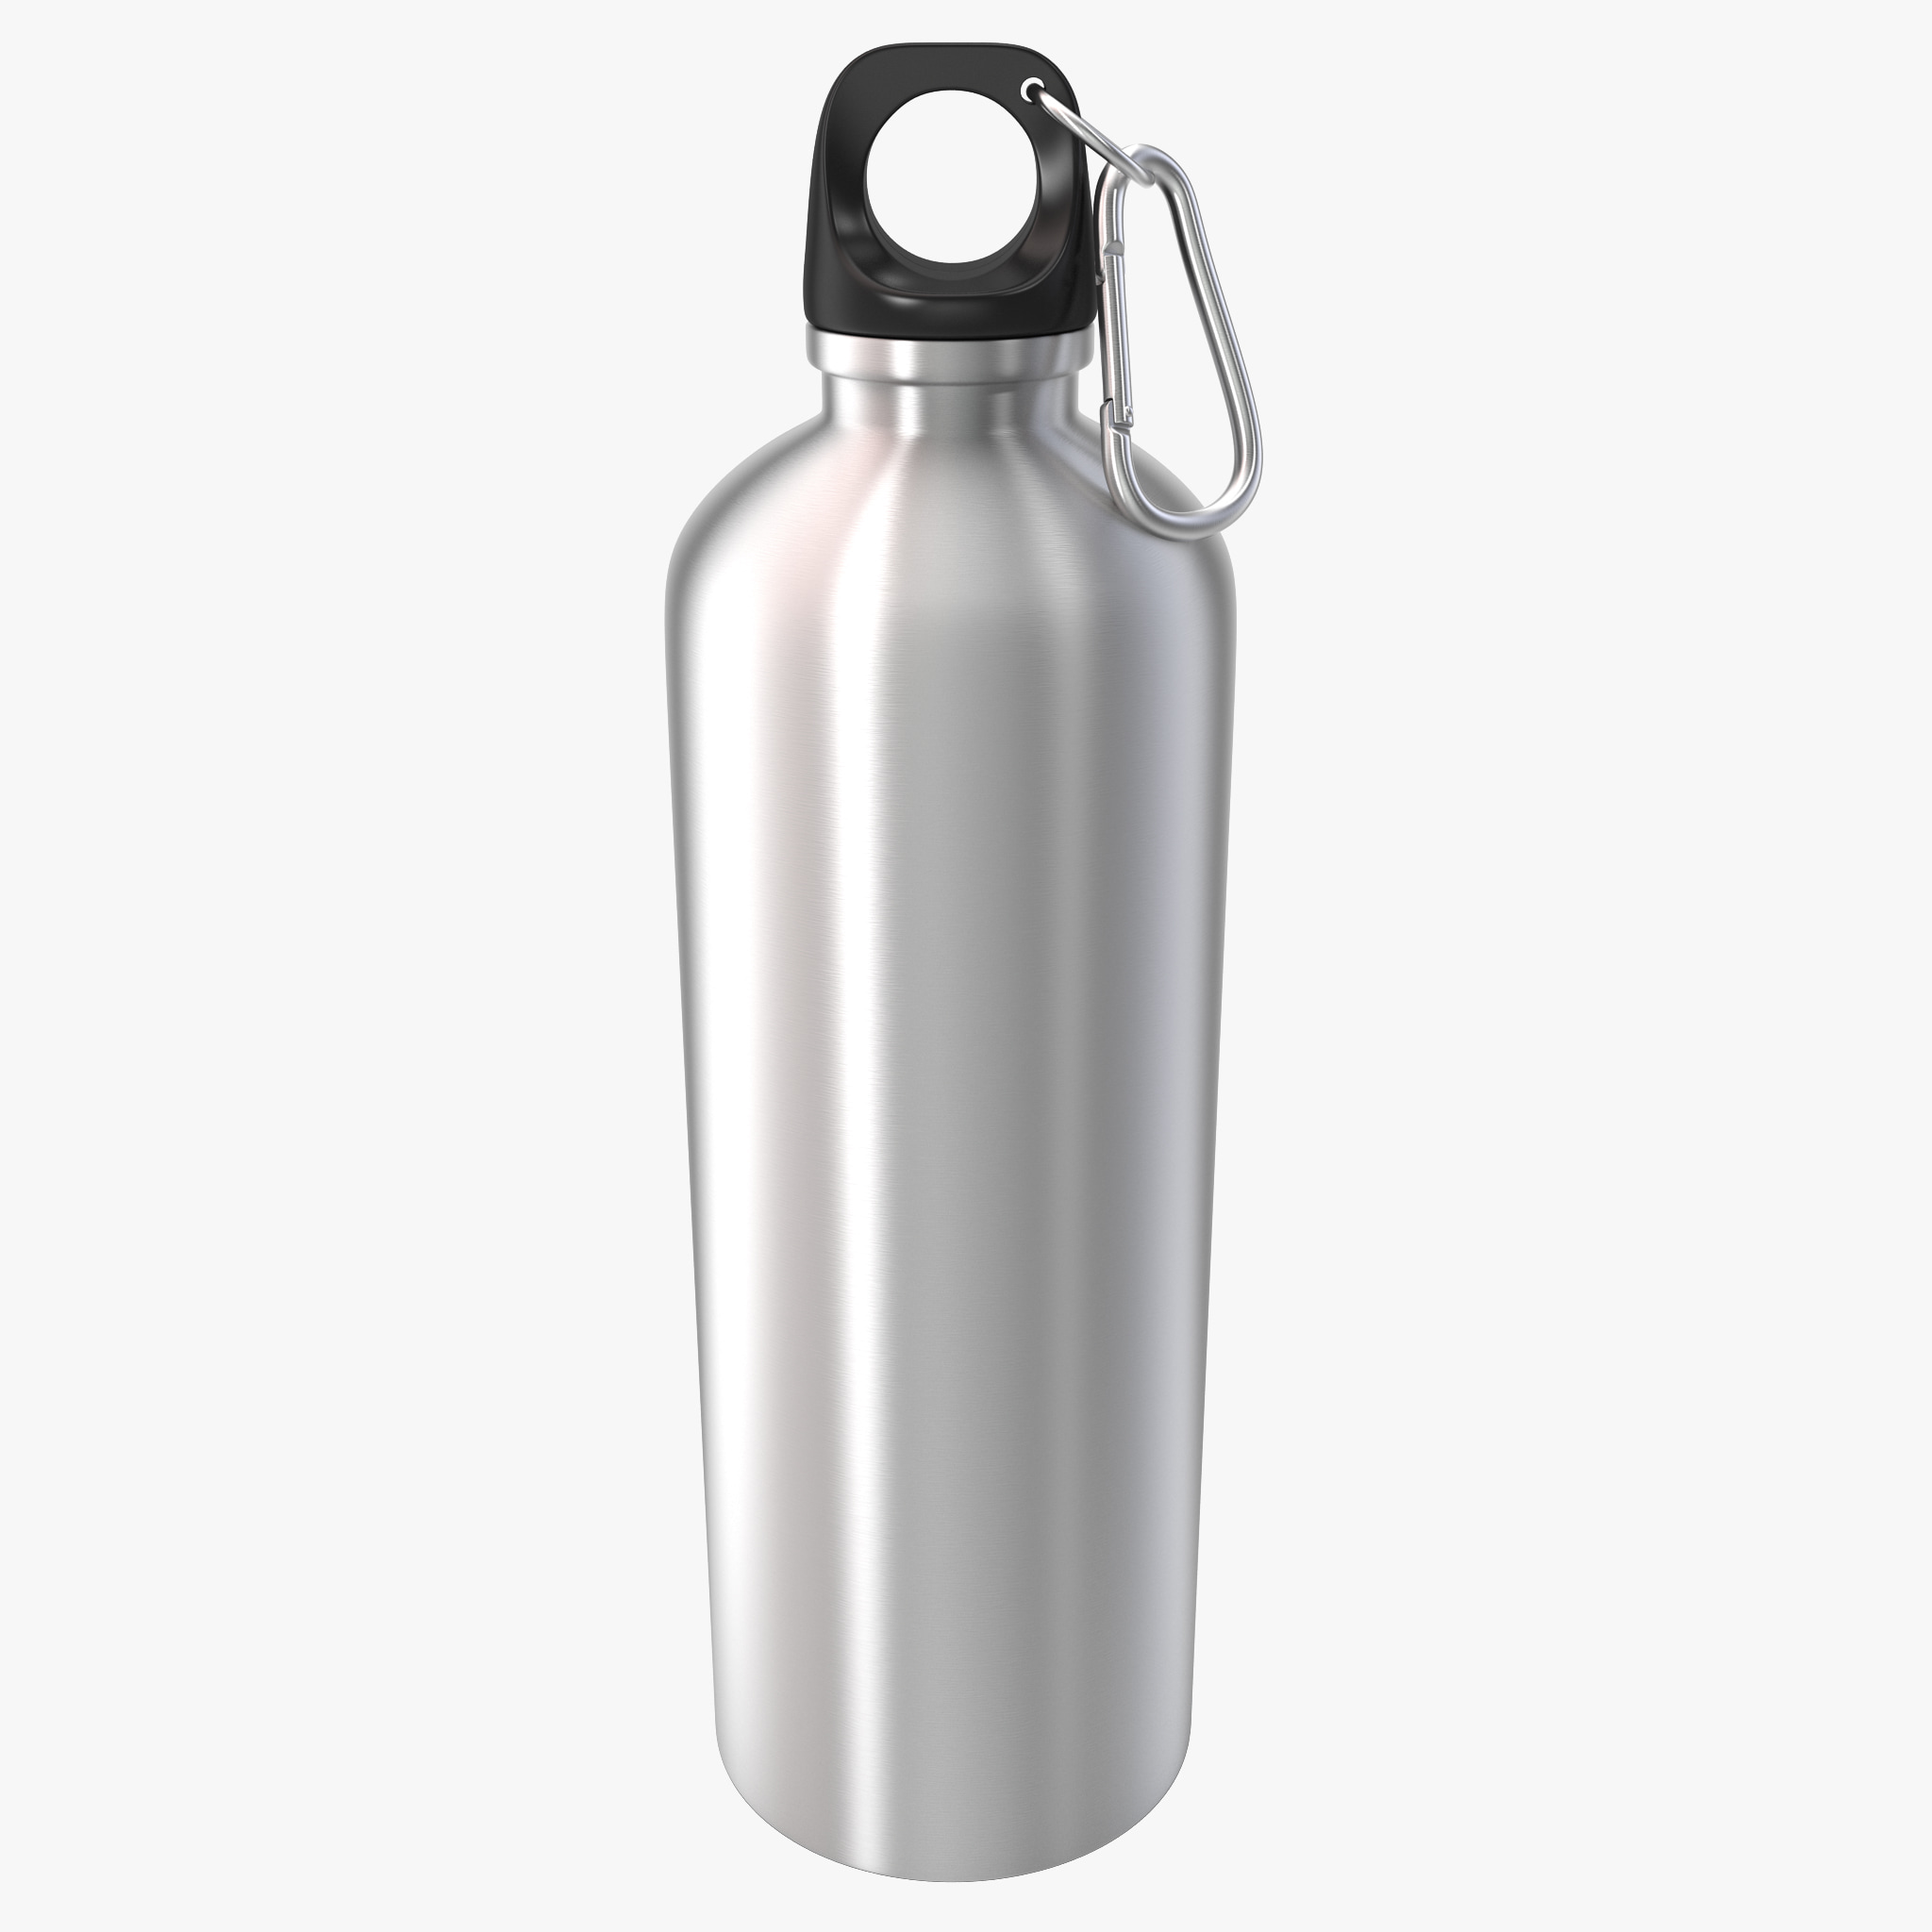 Reusable_Water_Bottle_000.jpg